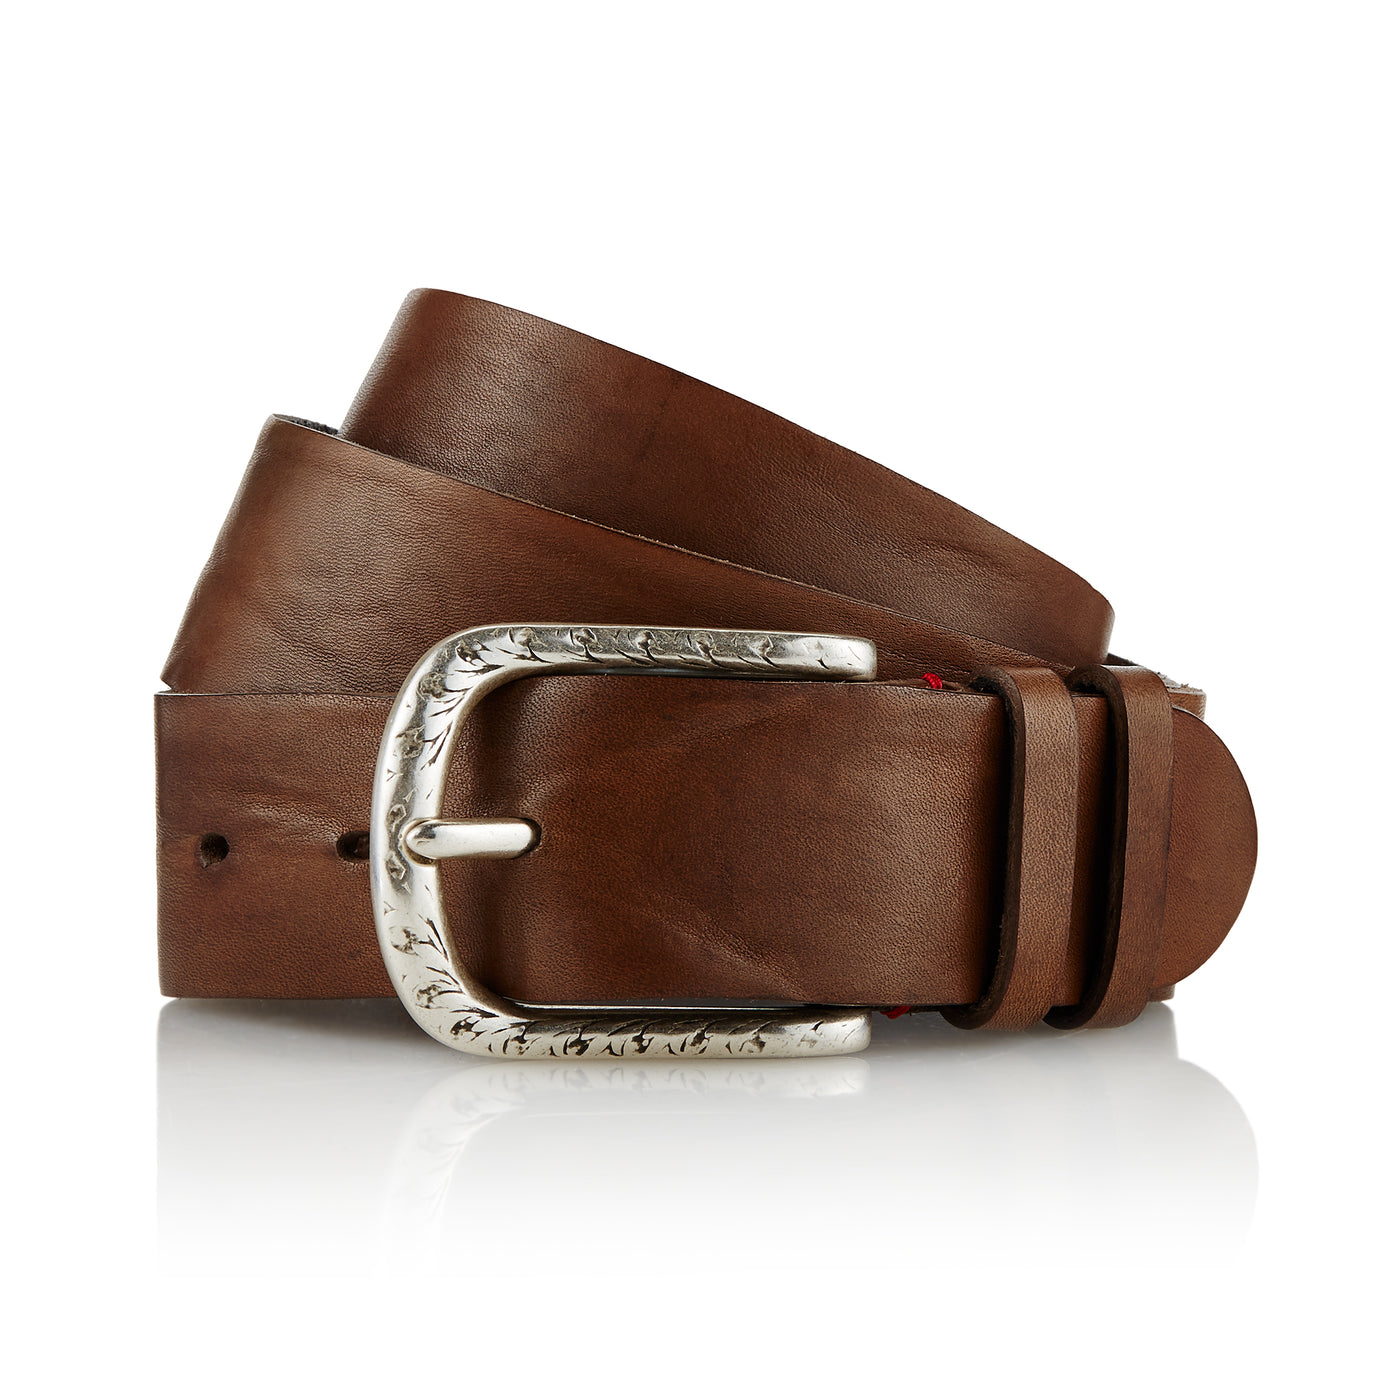 Dene - Handcrafted Italian Belt / Mud